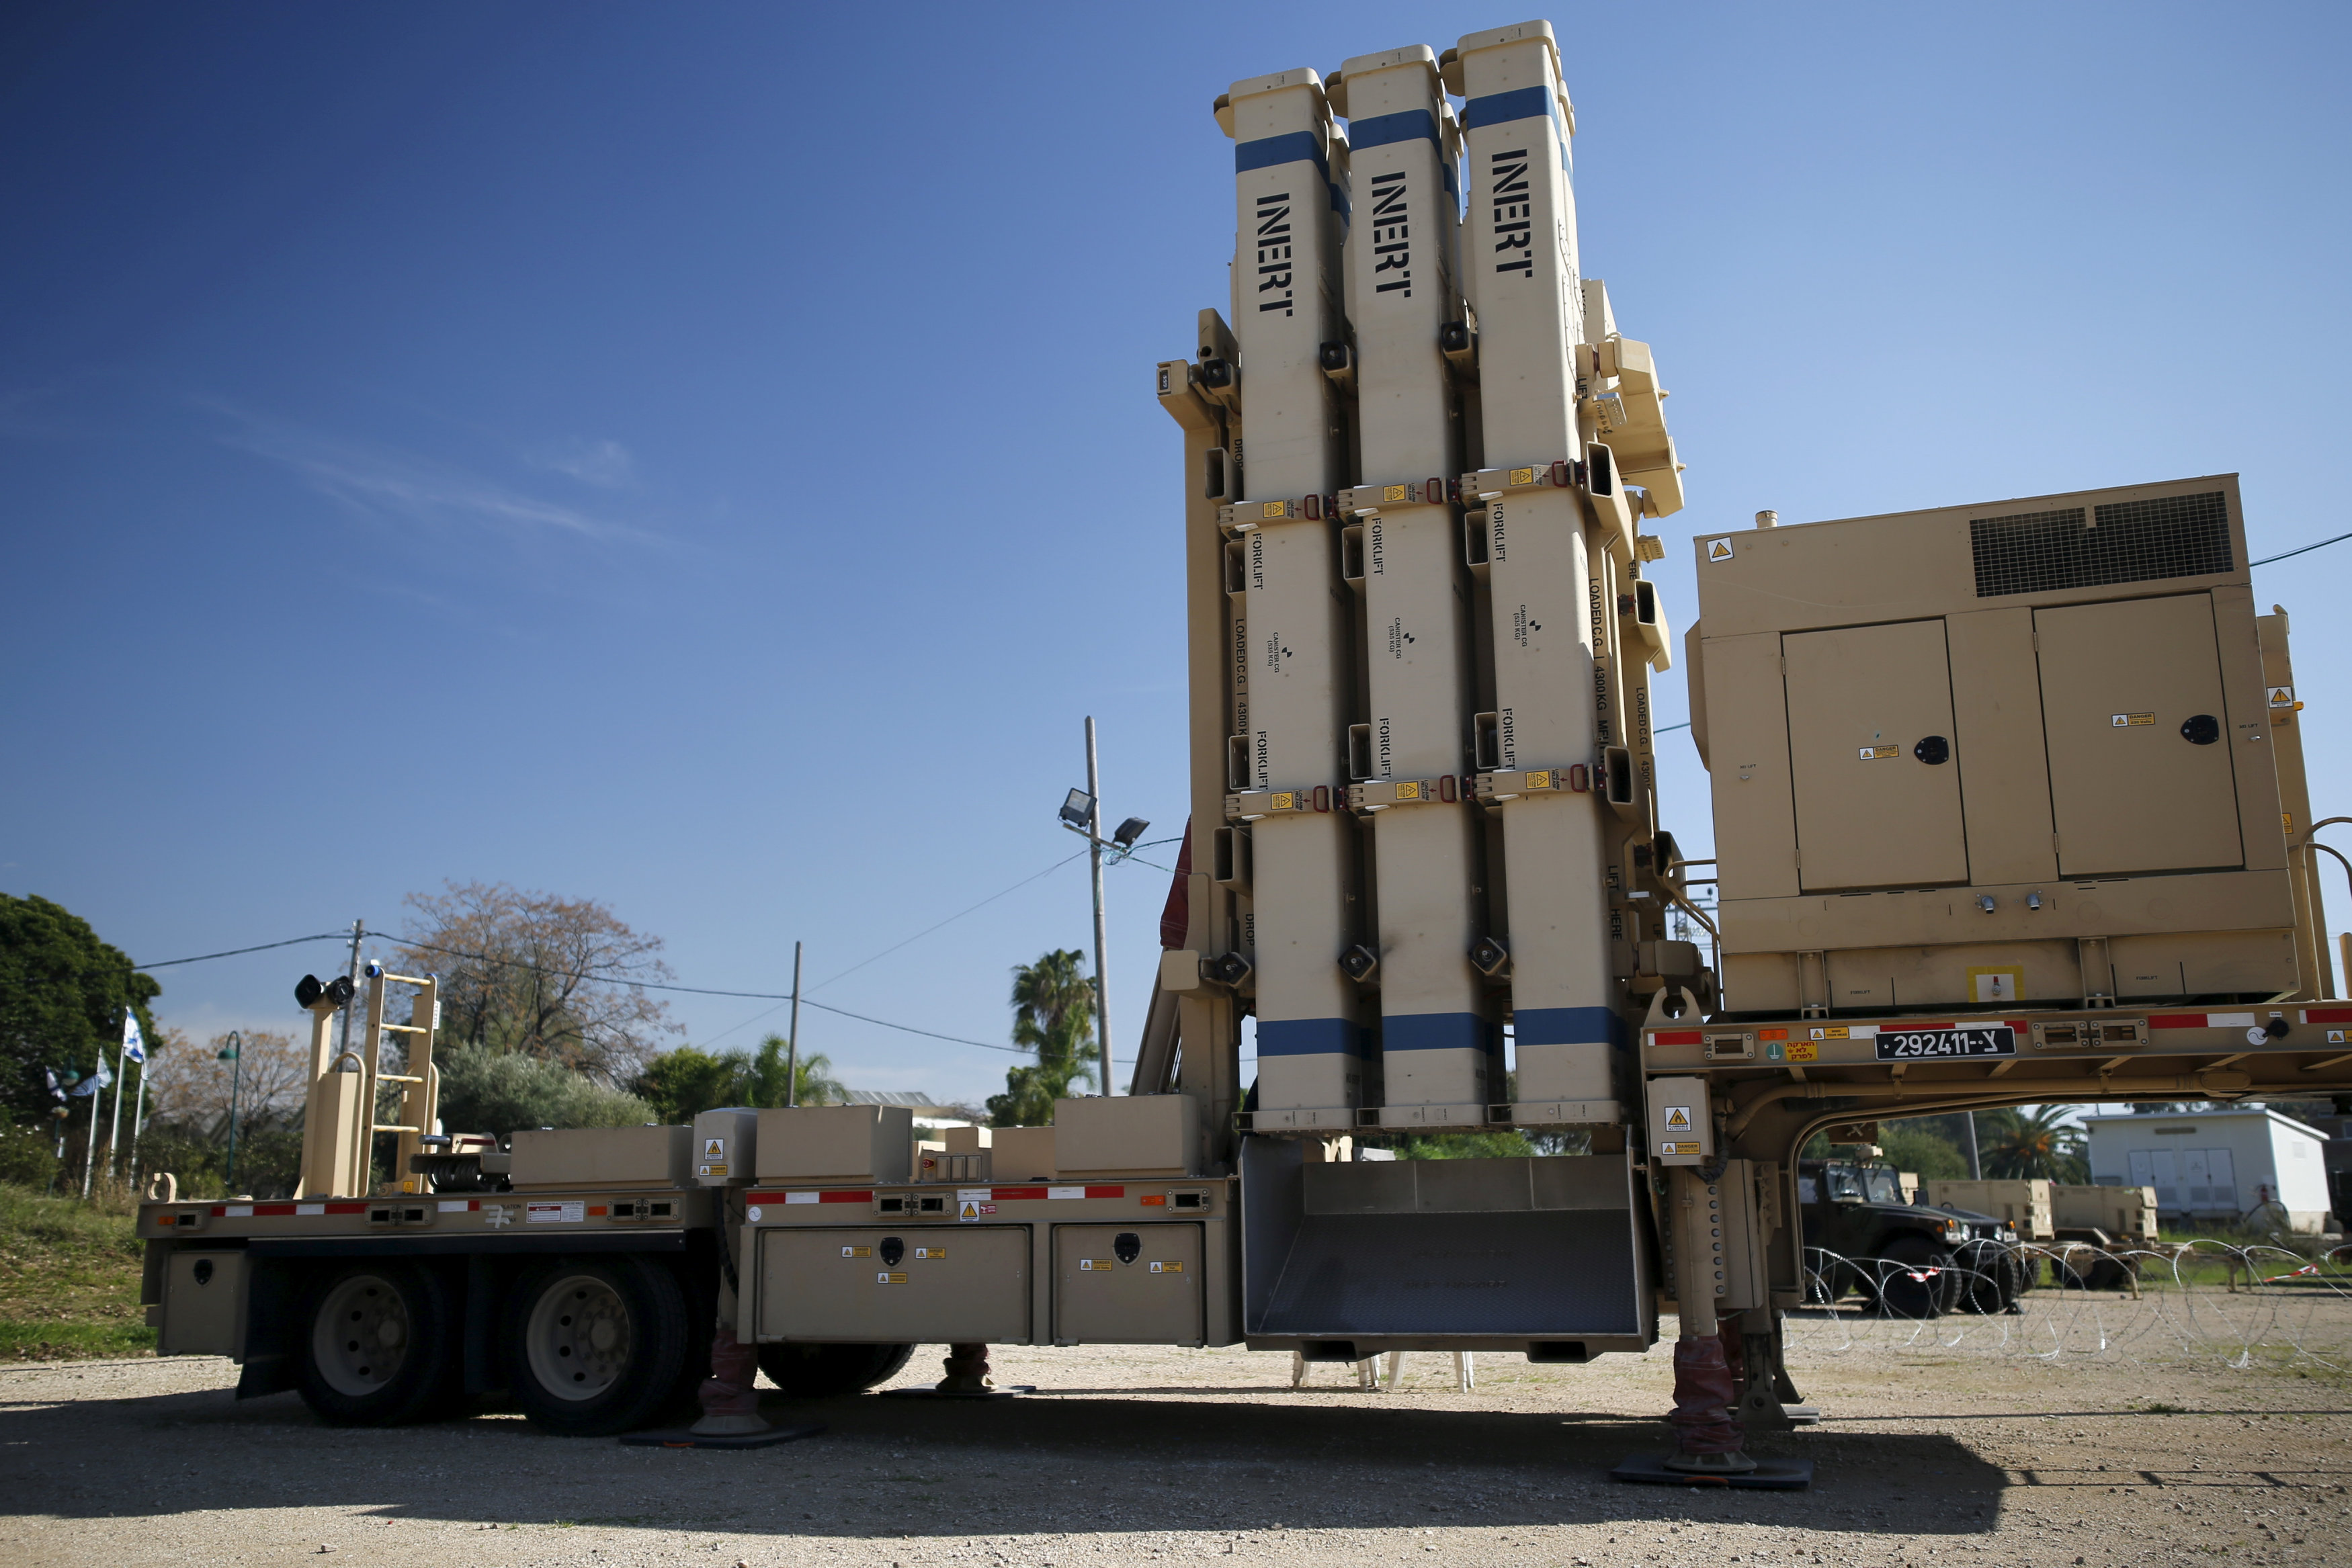 inactive version of Israel's air missile defense system